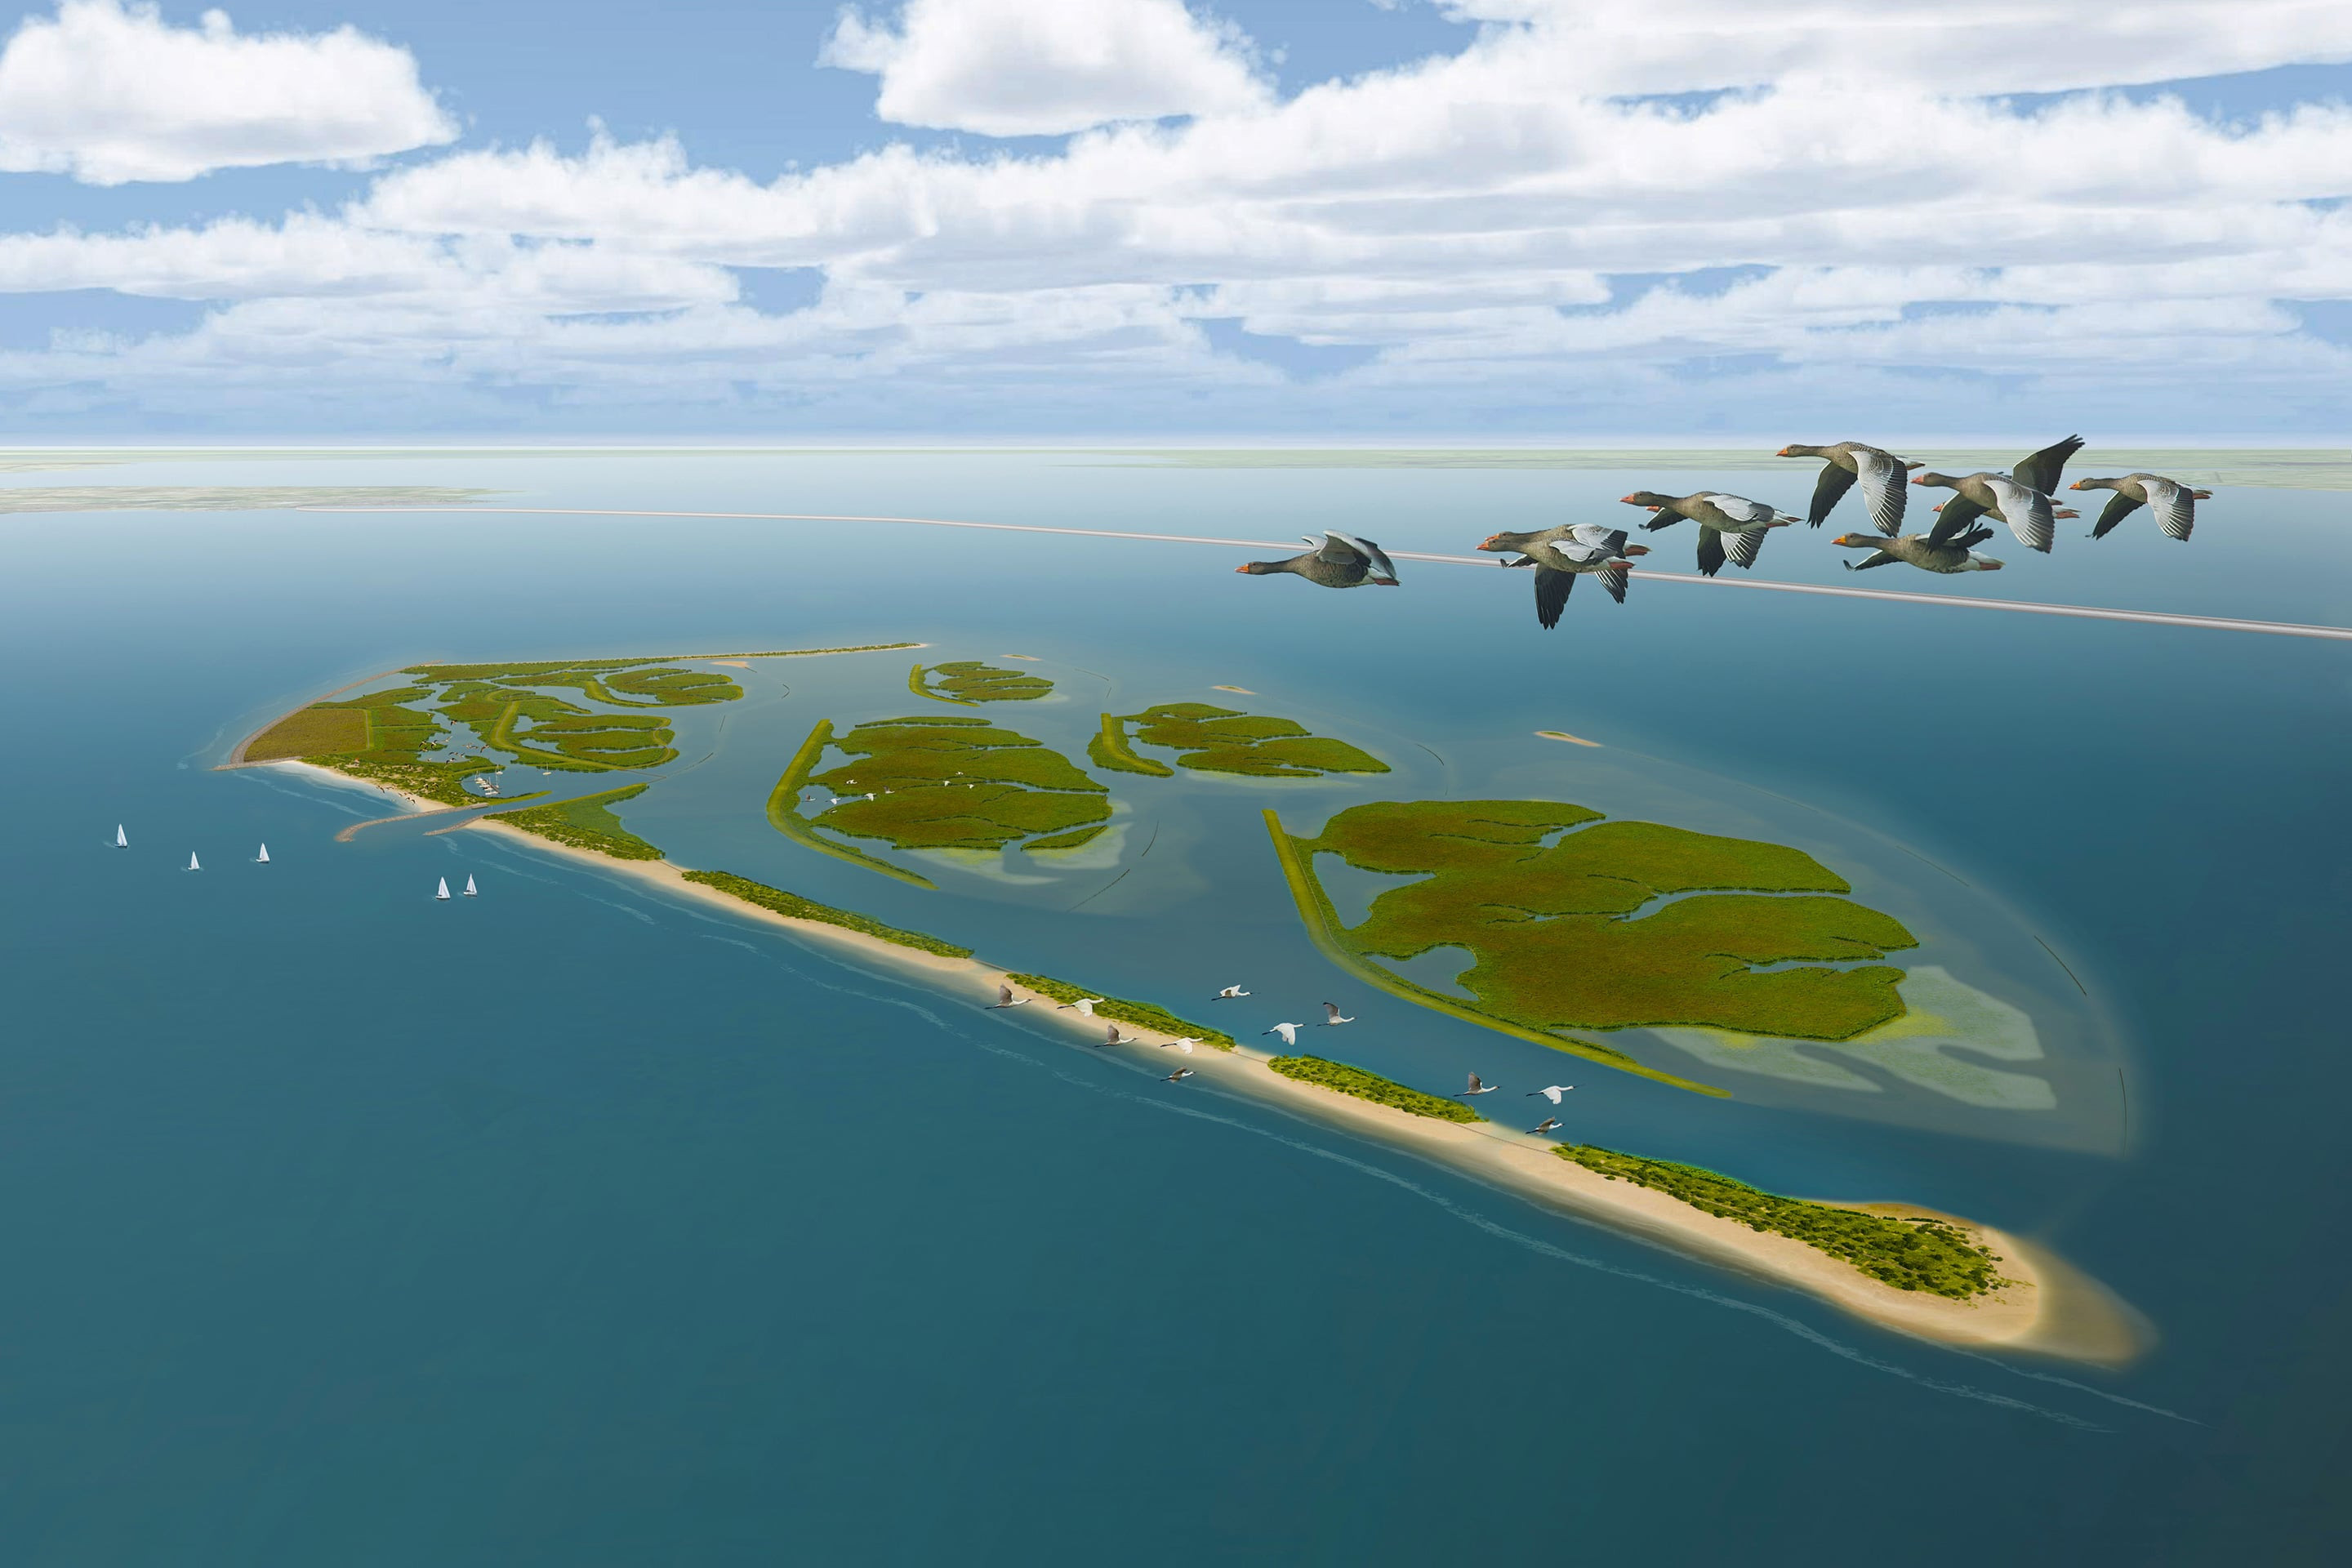 Artist impression of the Marker Wadden project